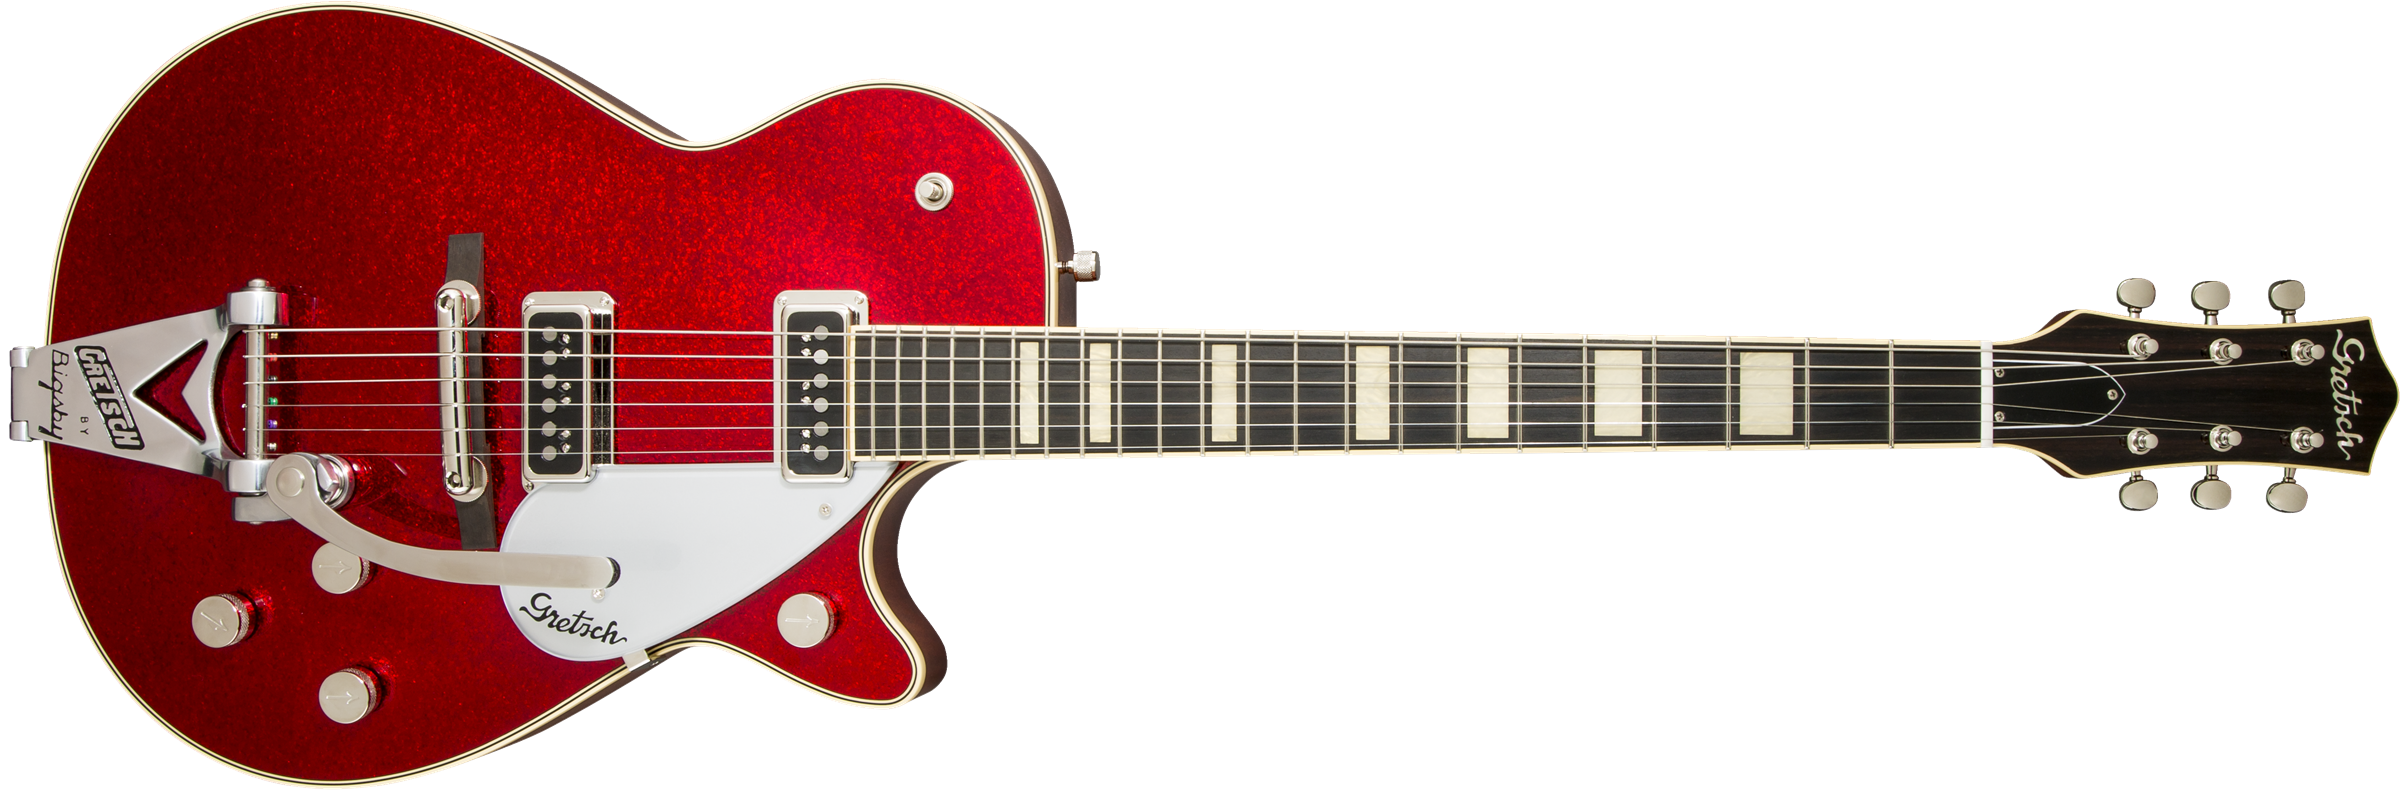 G6129T-RDSP-LTD15 Duo Jet™, Ebony Fingerboard, Red Sparkle